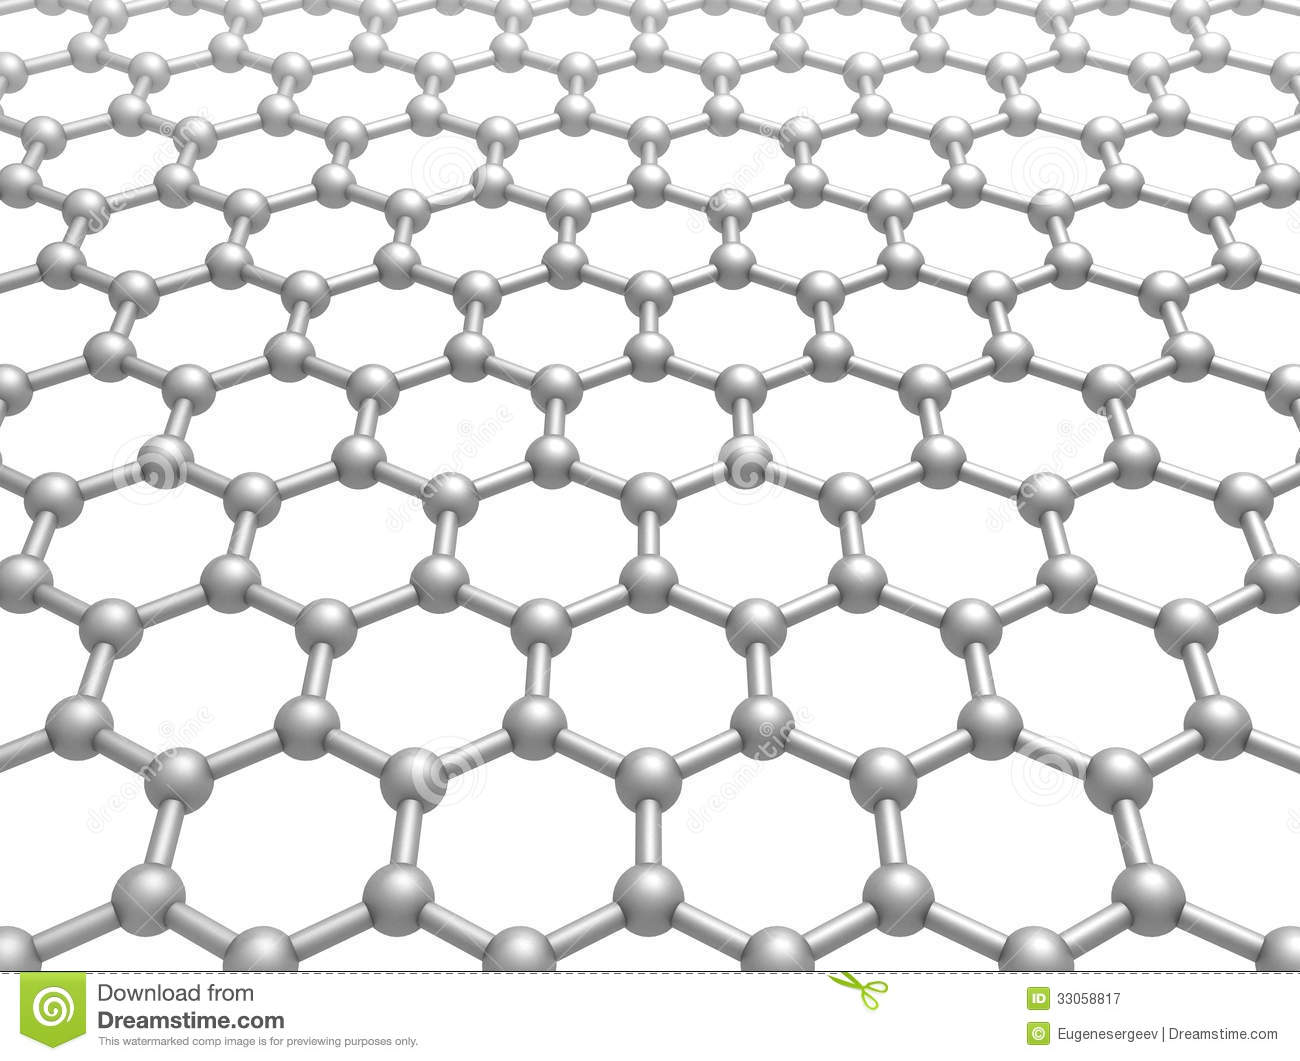 graphene layer structure schematic 3d model royalty free